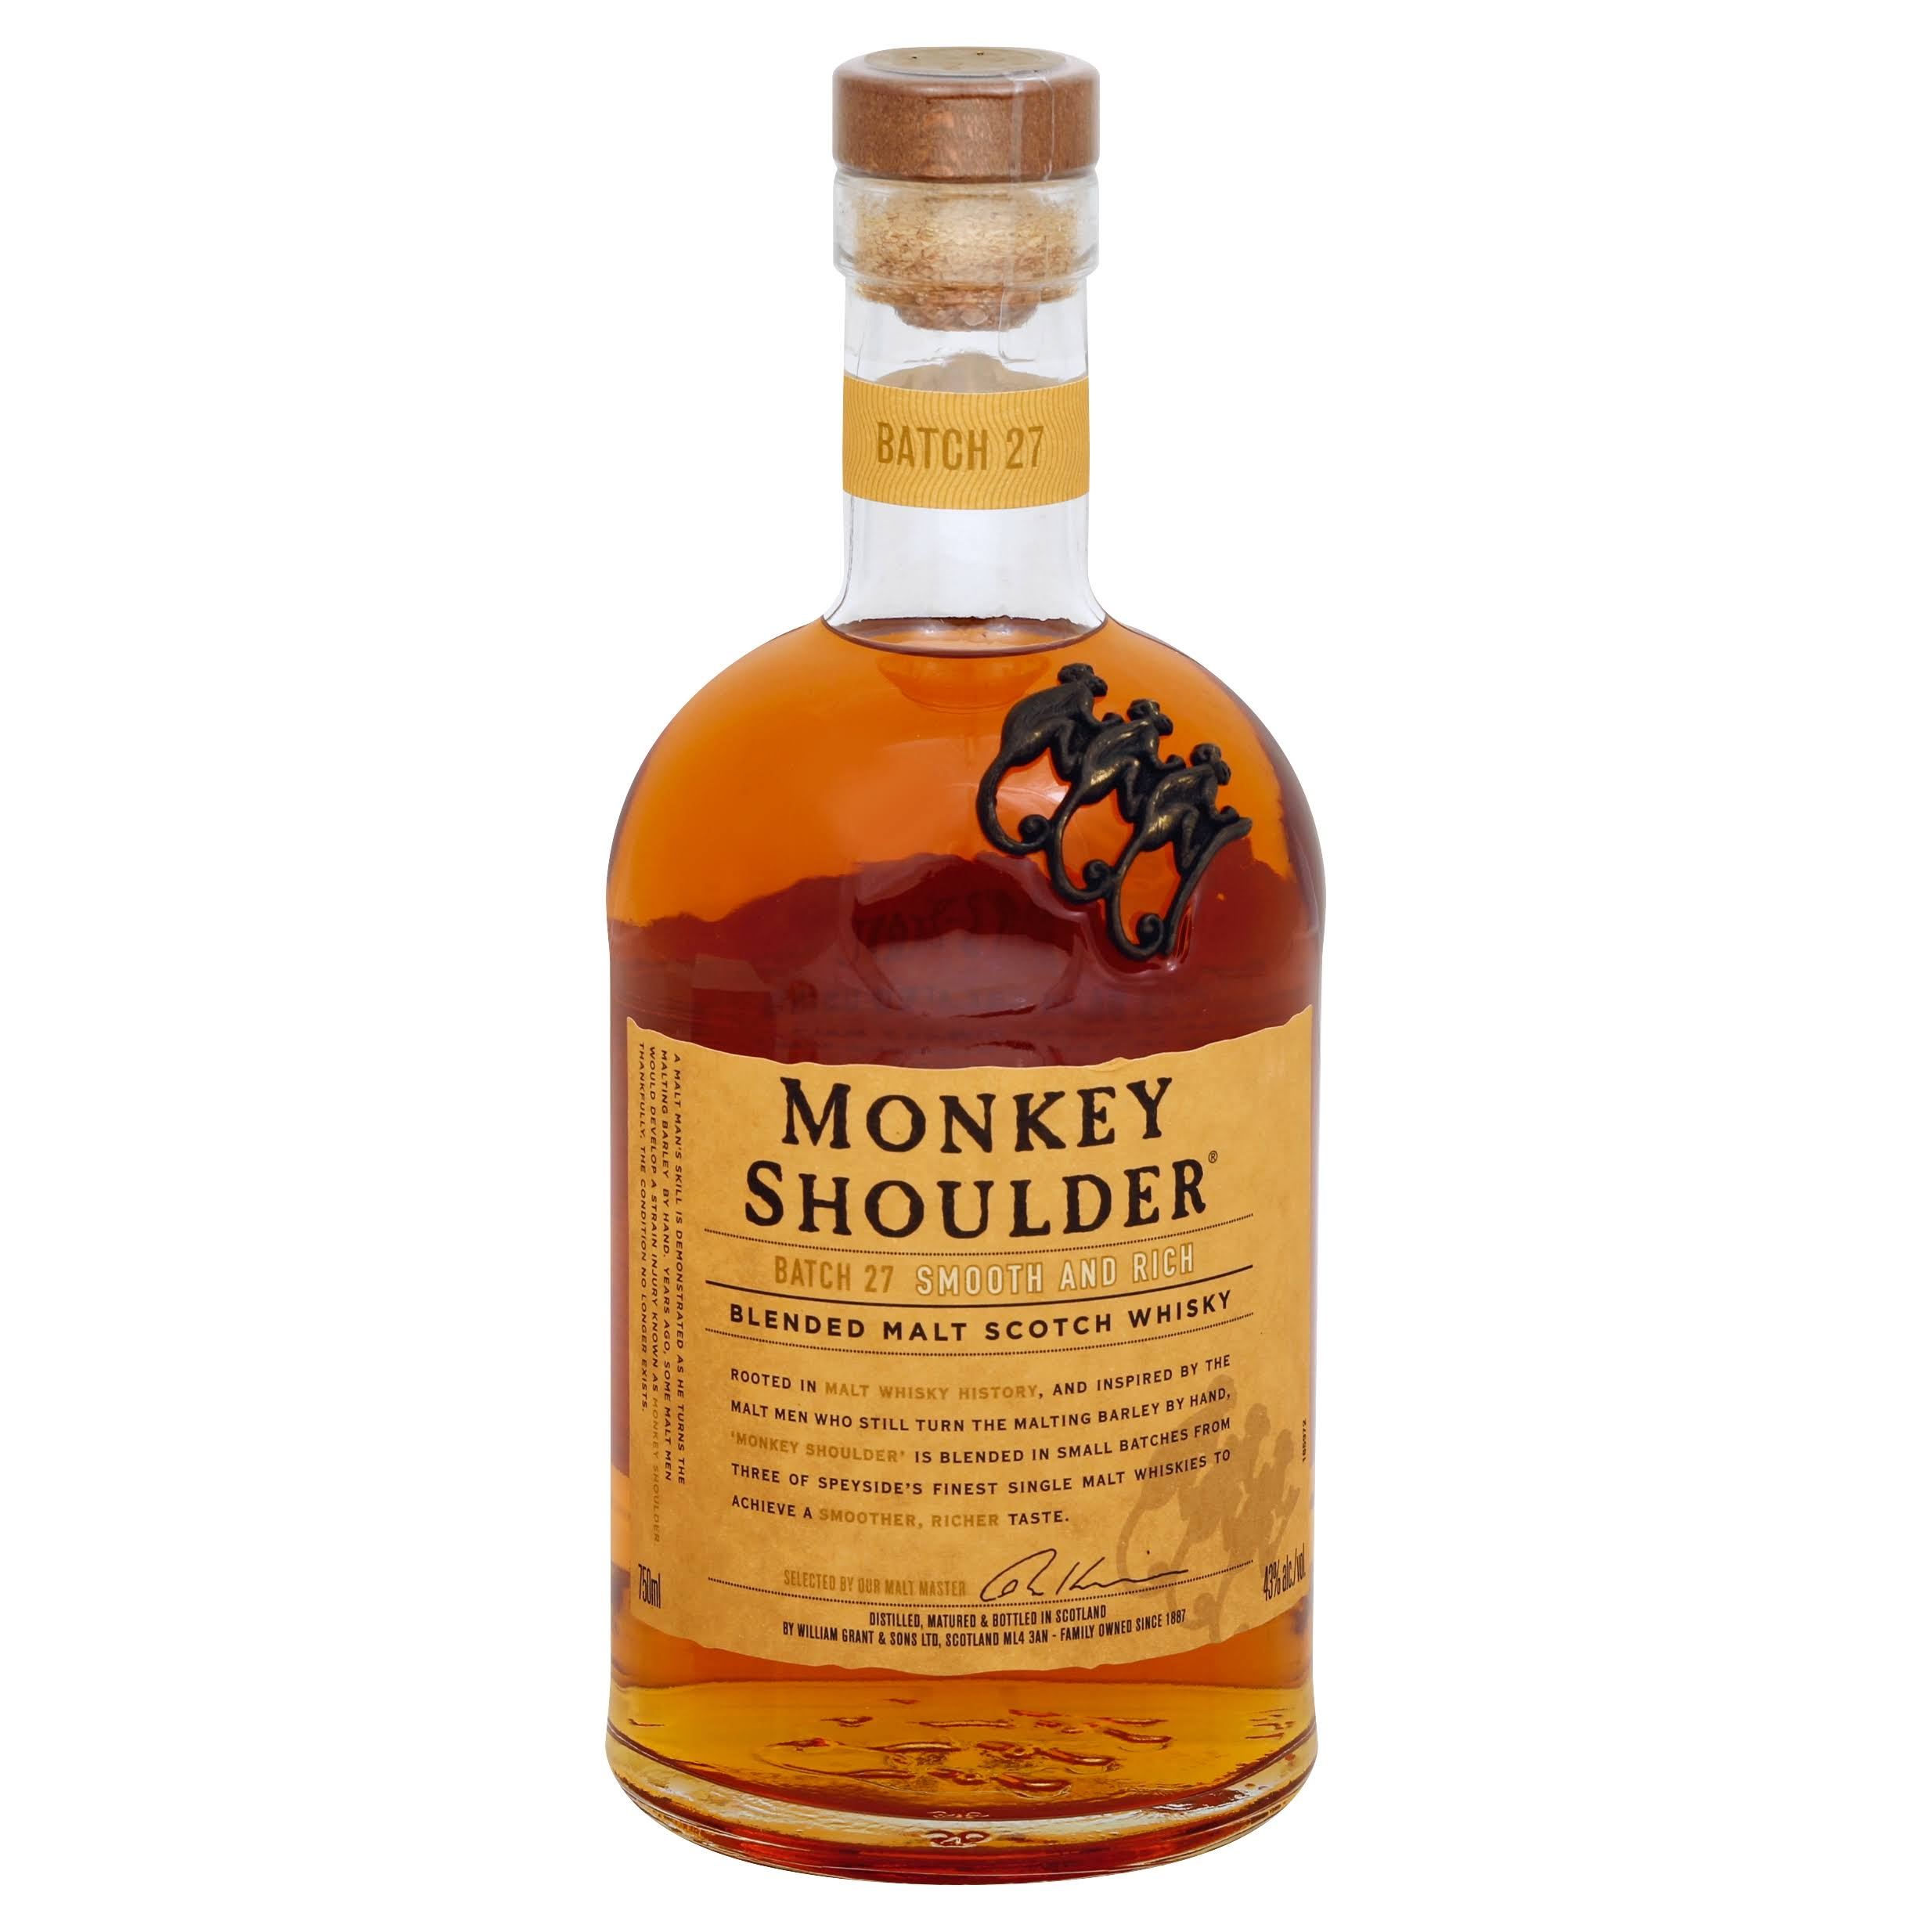 Monkey Shoulder Blended Malt Scotch Whisky - 750ml